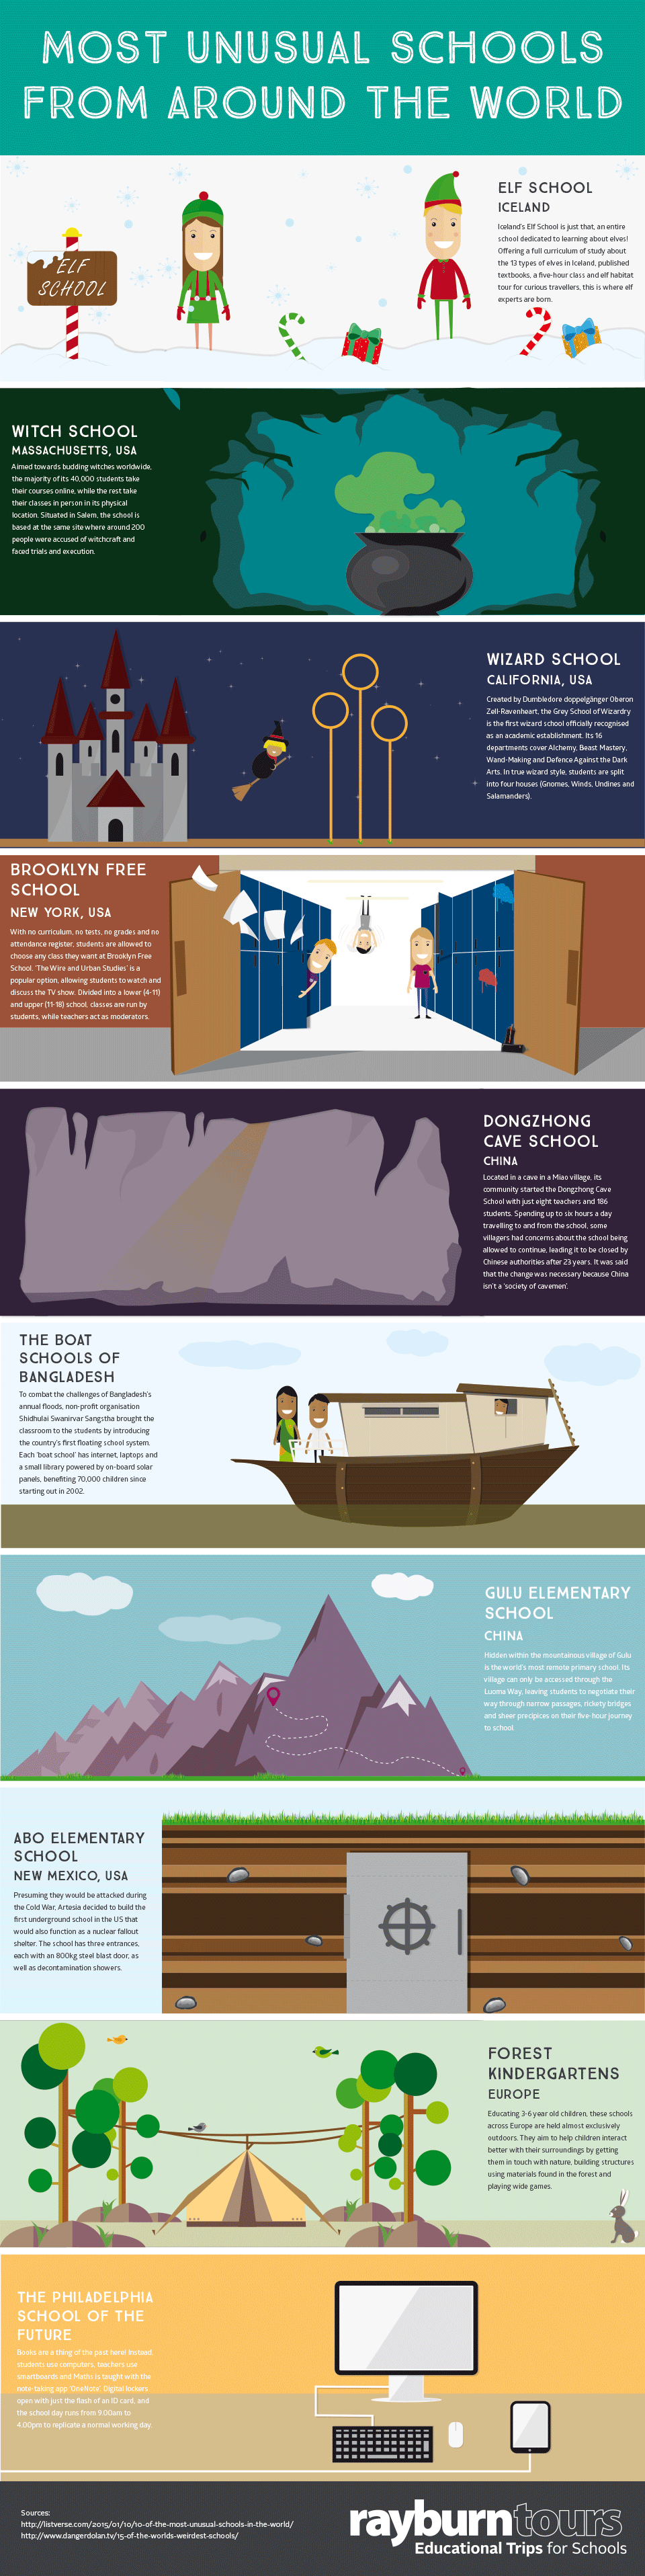 10 Most Unusual Schools #infographic